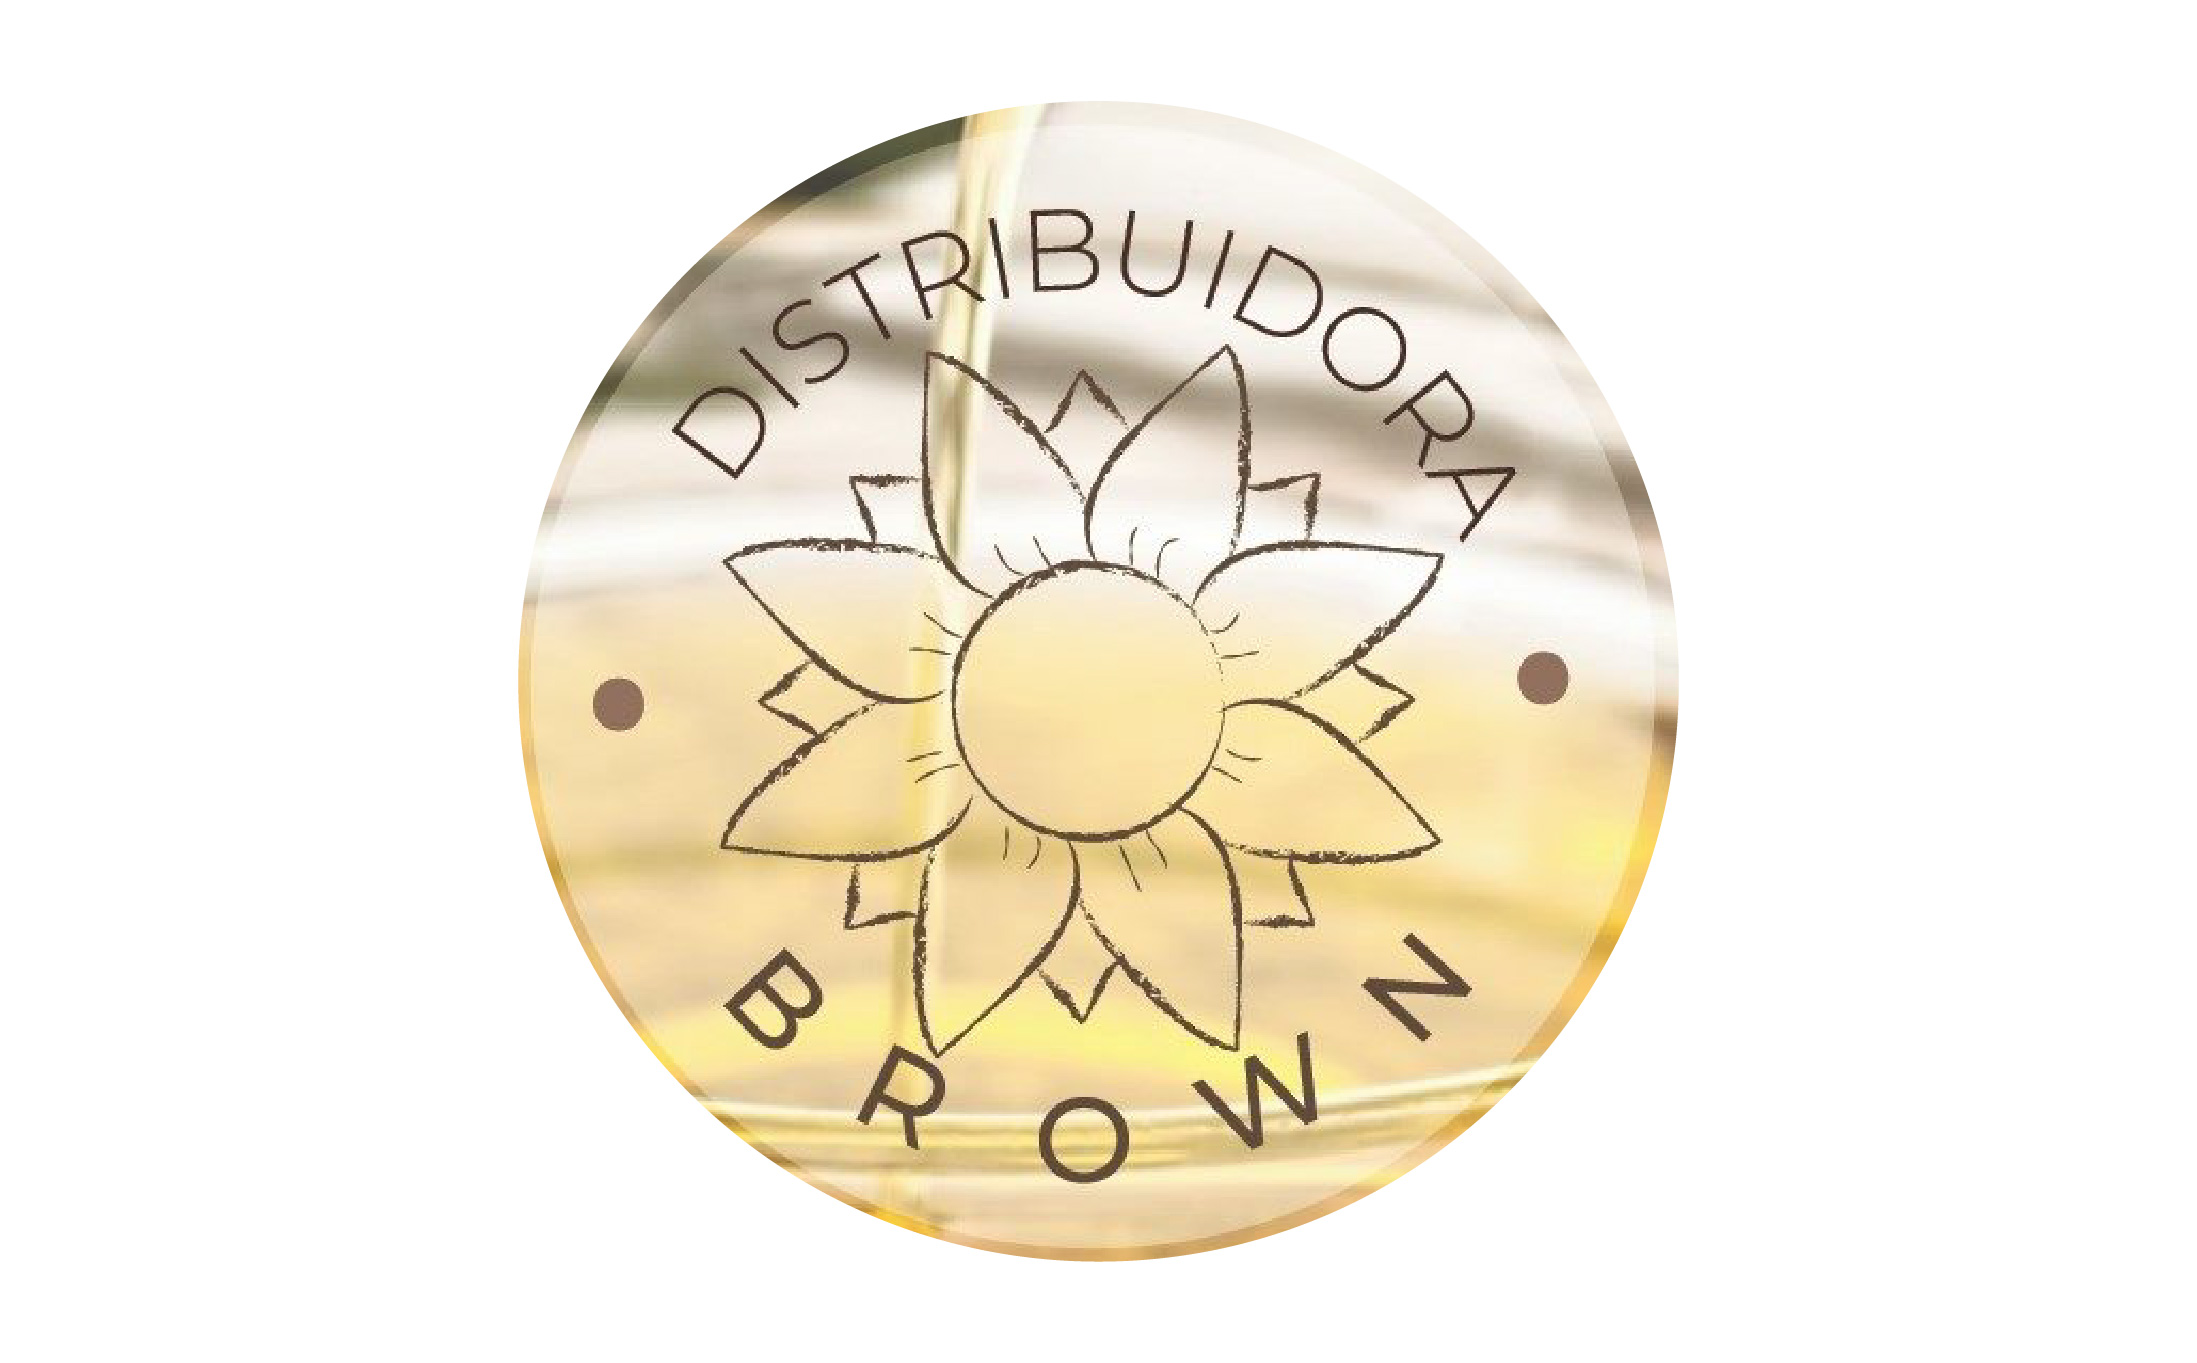 Distribuidora Brown - Logo